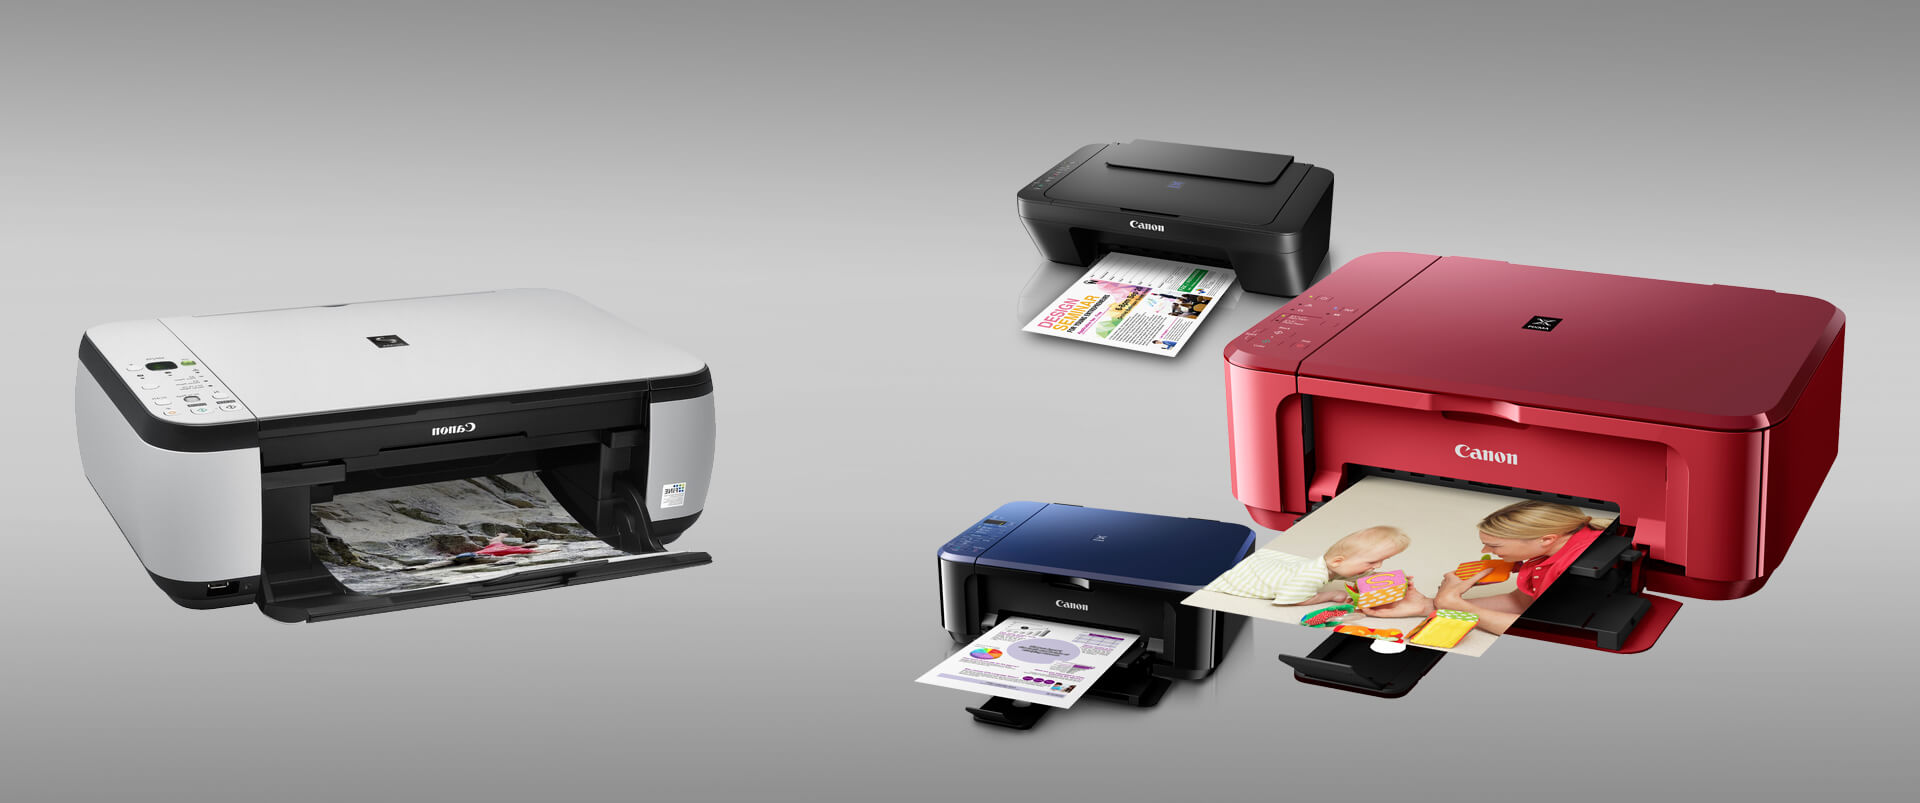 How to Contact Canon Printer Support?